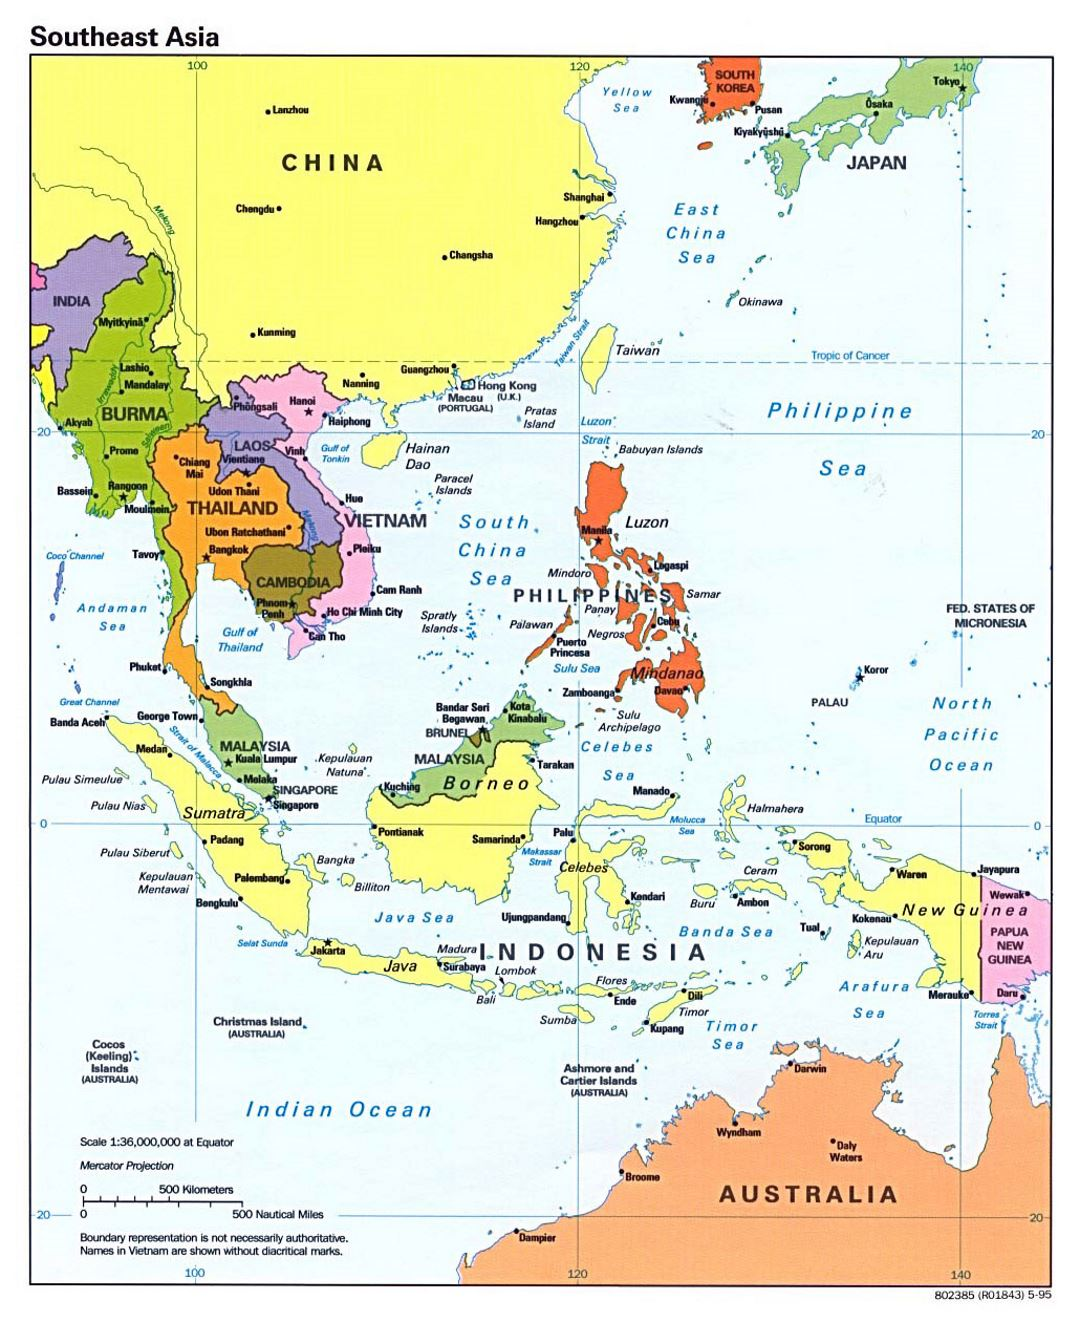 Political Map Of Southeast Asia With Capitals.Detailed Political Map Of Southeast Asia With Capitals And Major